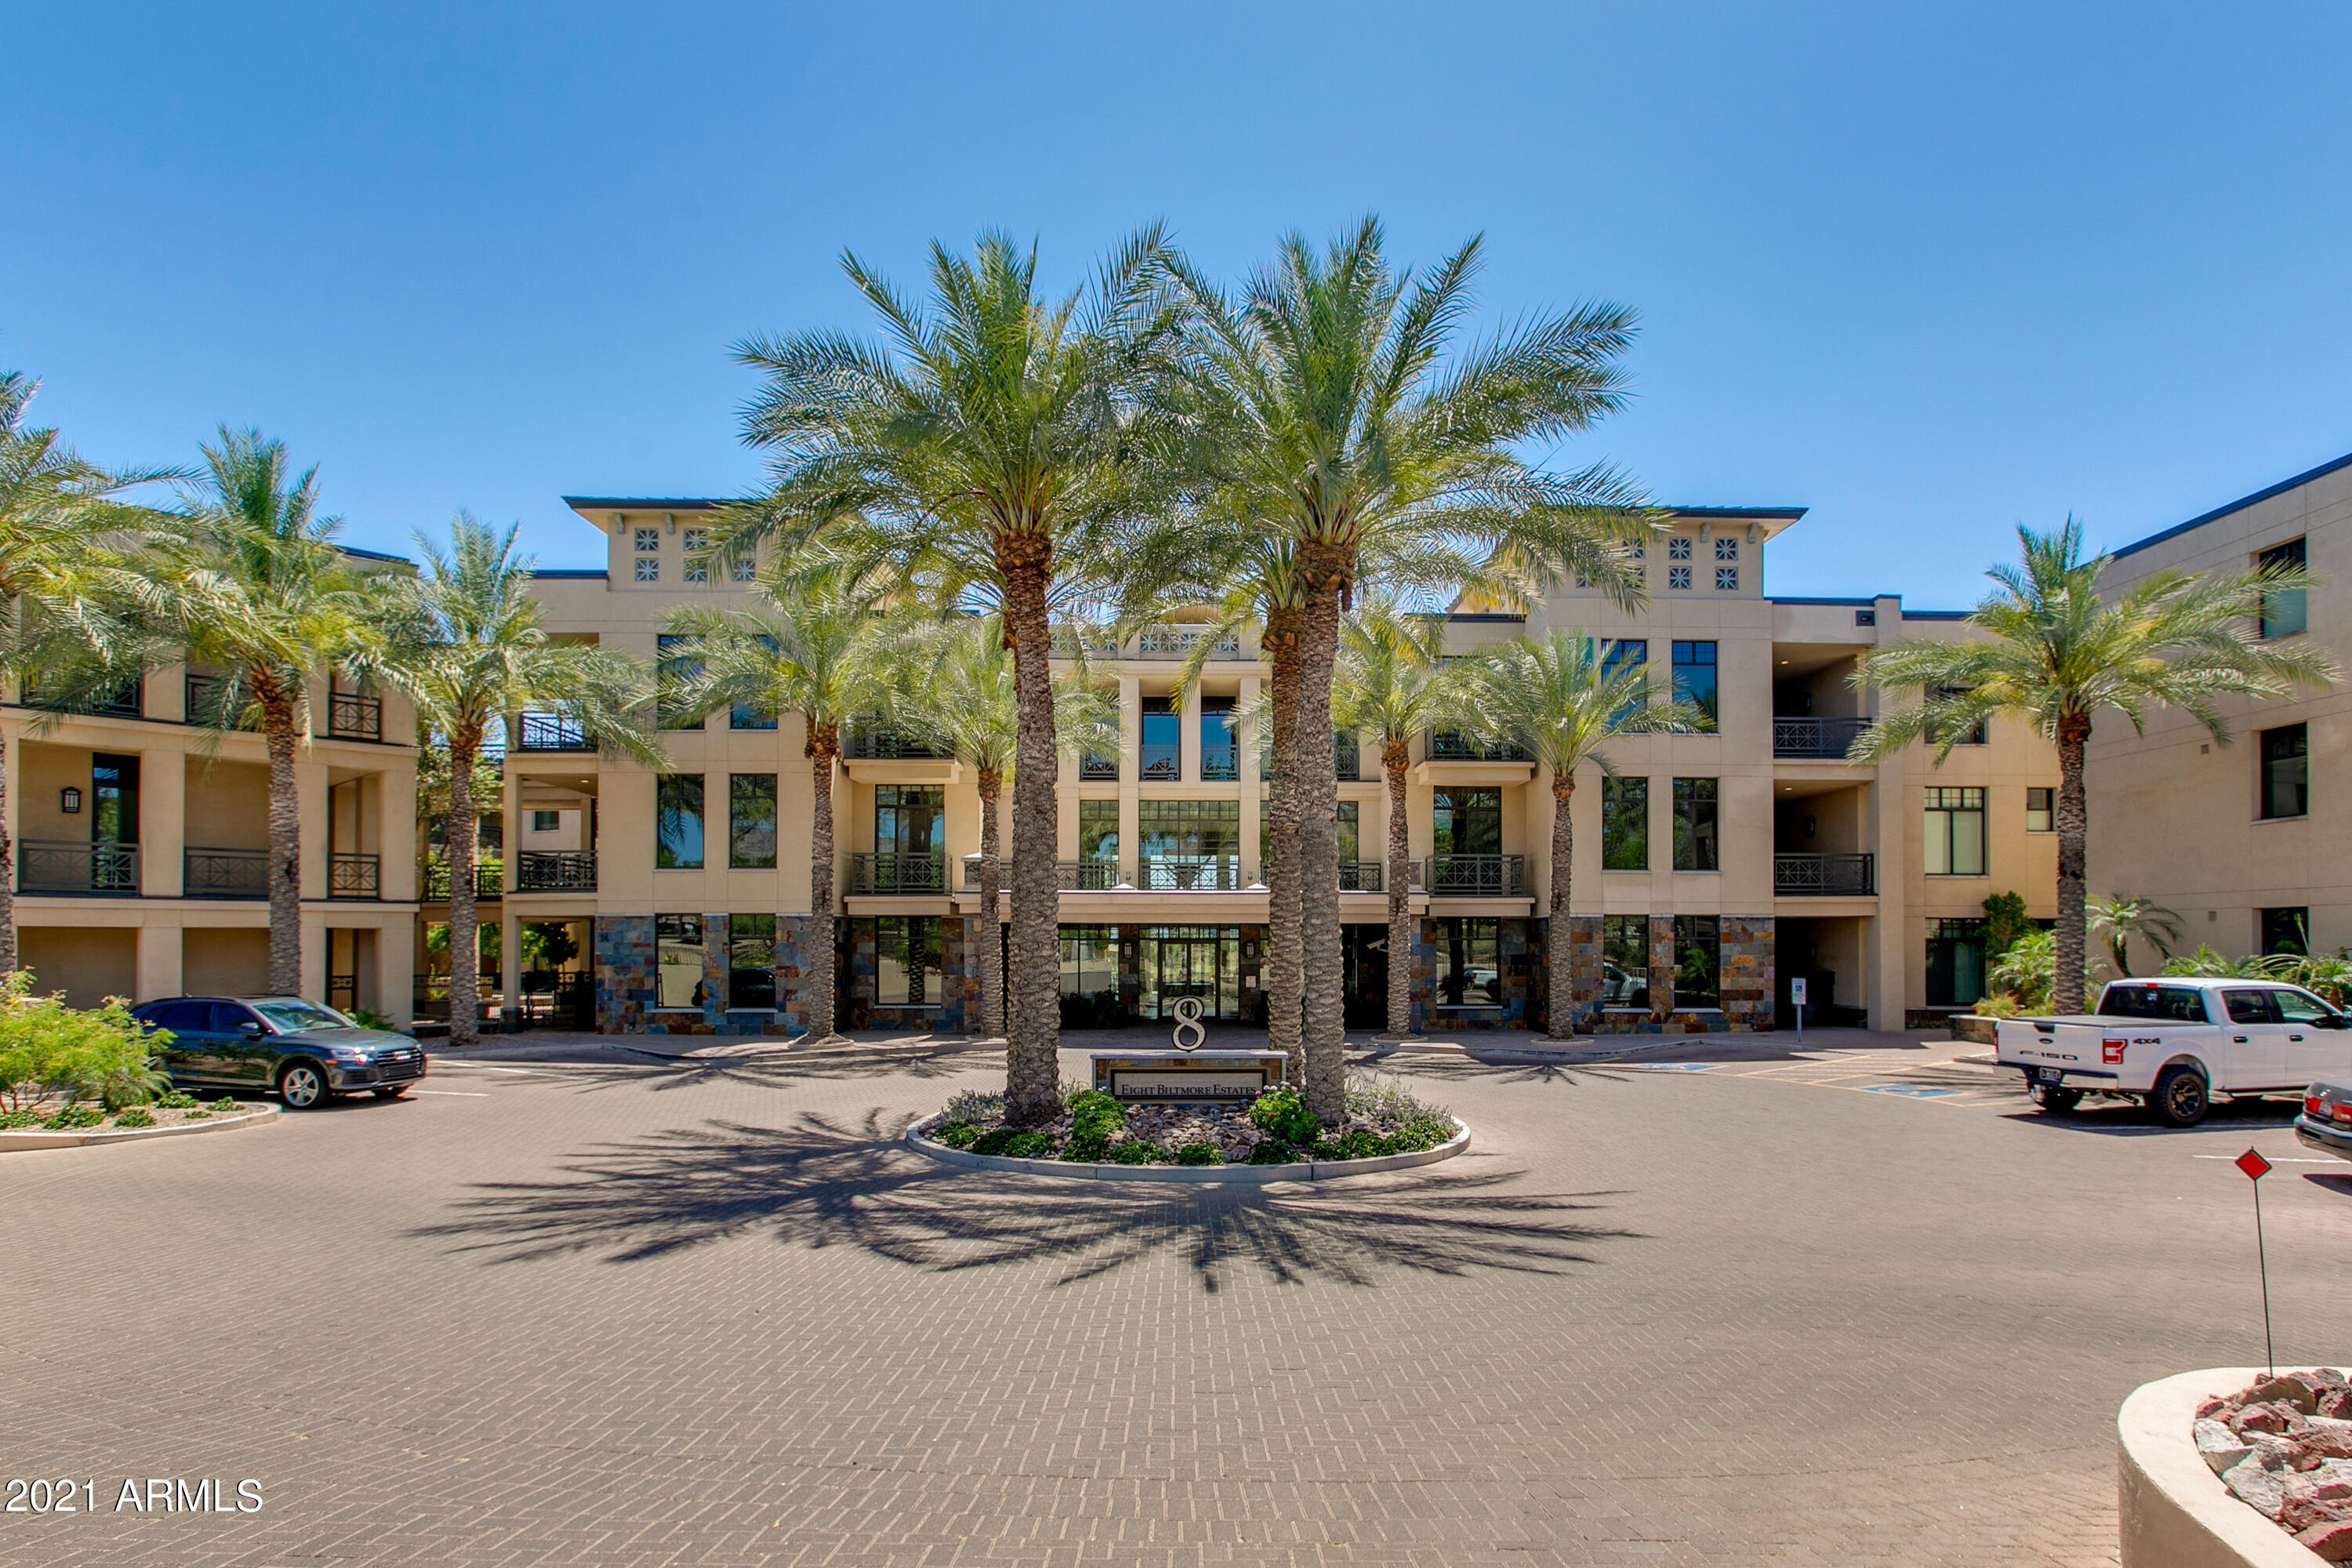 True elegance is hard to come by with a lock and leave lifestyle but not at the beautiful community of Fairway Lodge! Enjoy the pristine and well-maintained grounds, resort-style pool and spa, fitness center, clubhouse, and underground parking! This prime corner unit is located on the first floor and offers easy access from the parking elevators. Inside you'll find high ceilings, plenty of natural light, cherry wood cabinetry, granite counters, SubZero & Wolf appliances, engineered wood and travertine flooring, and a stunning gas fireplace. The master retreat features a private patio and an ensuite with double vanities and walk-in closets. Call today to schedule an easy, private showing.